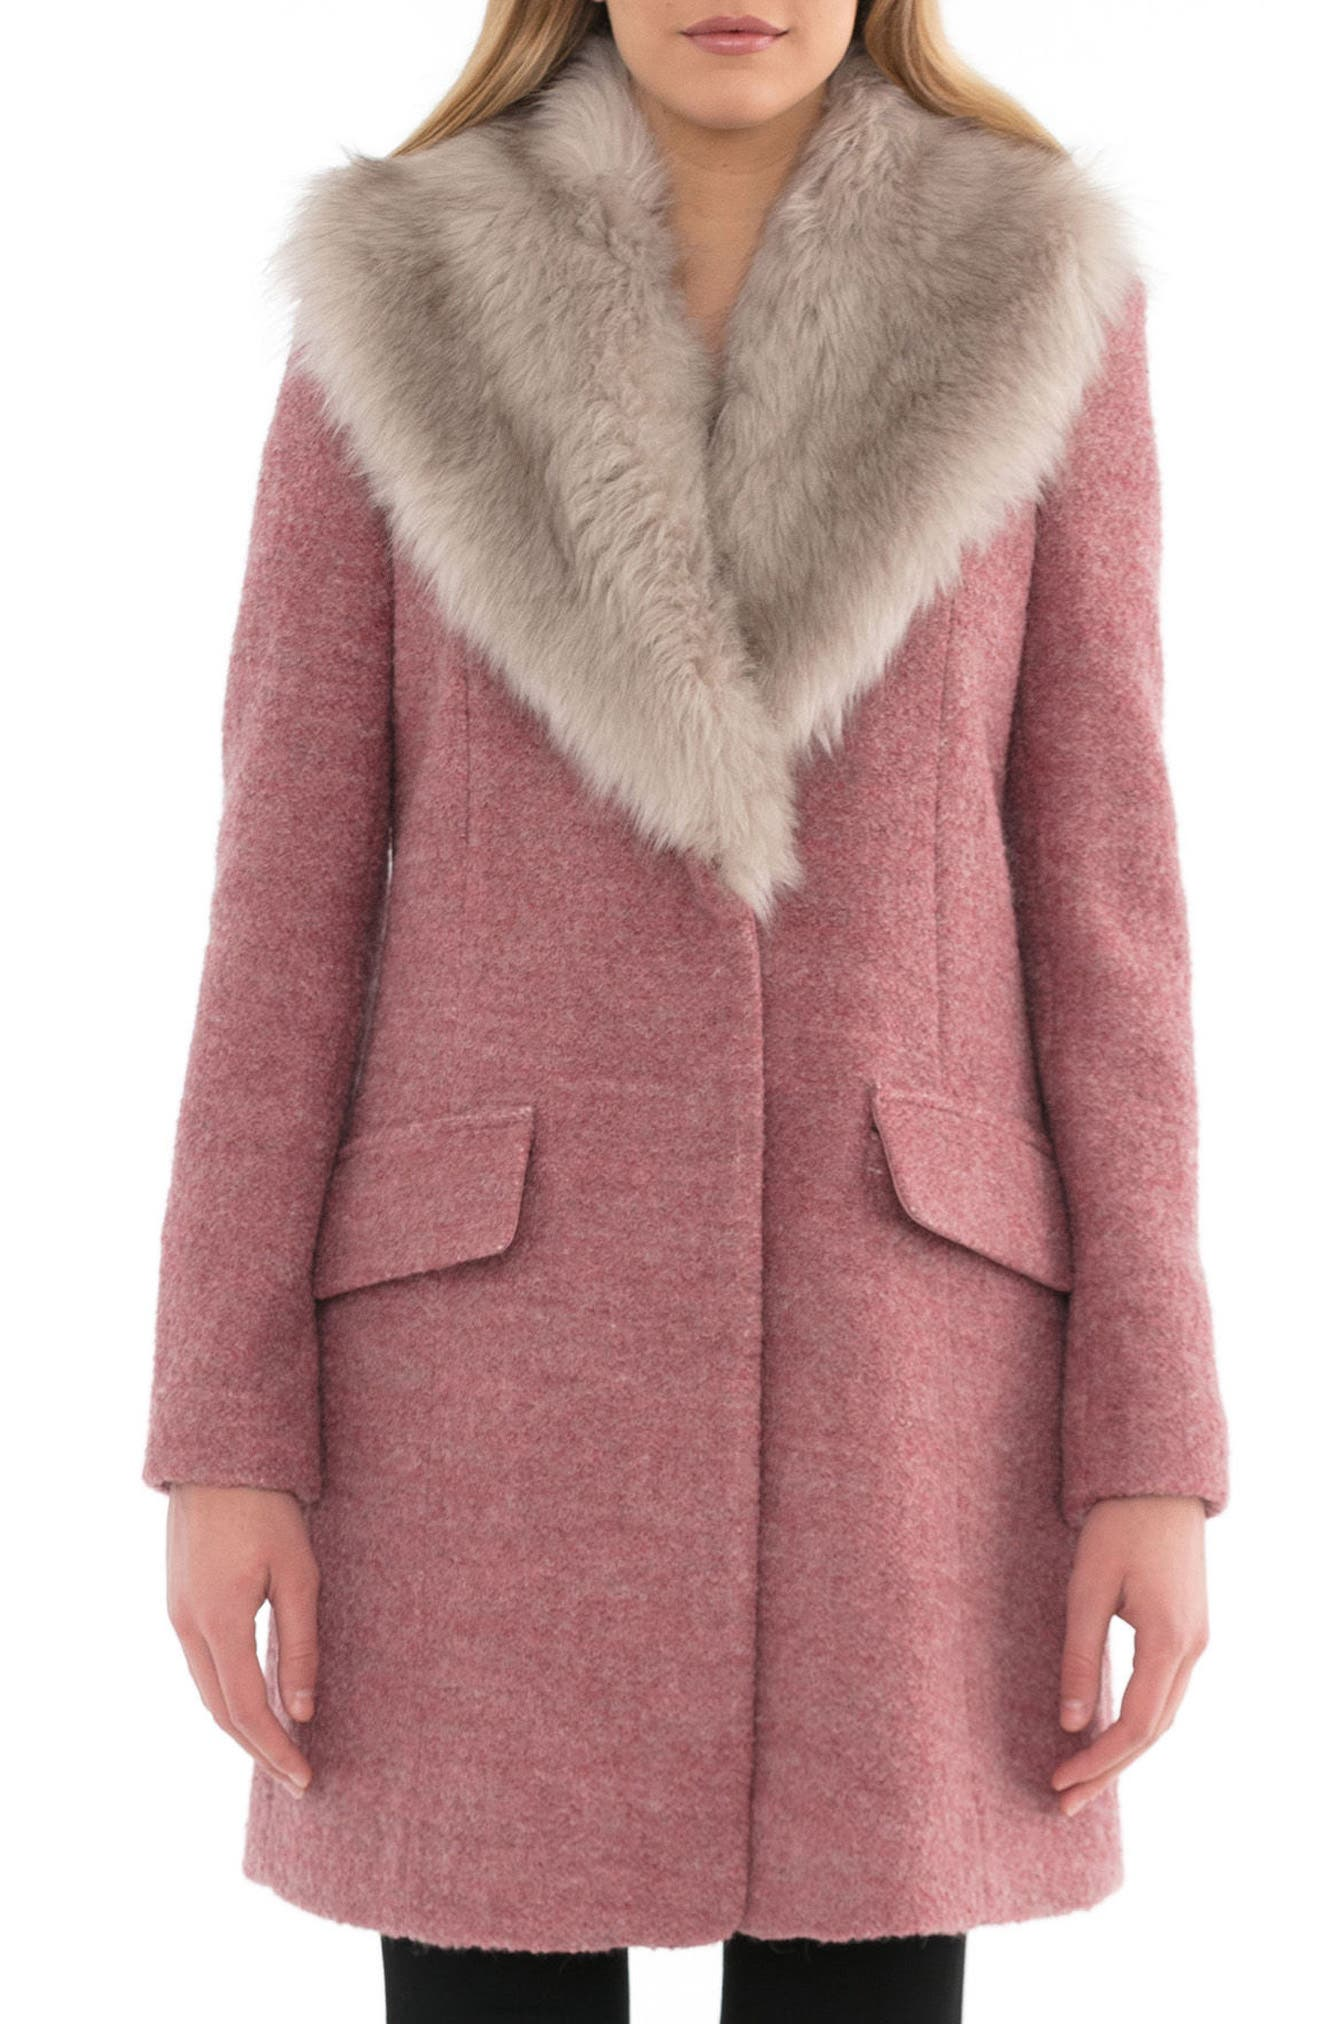 Belle Badgley Mischka 'Holly' Faux Fur Collar Bouclé Coat